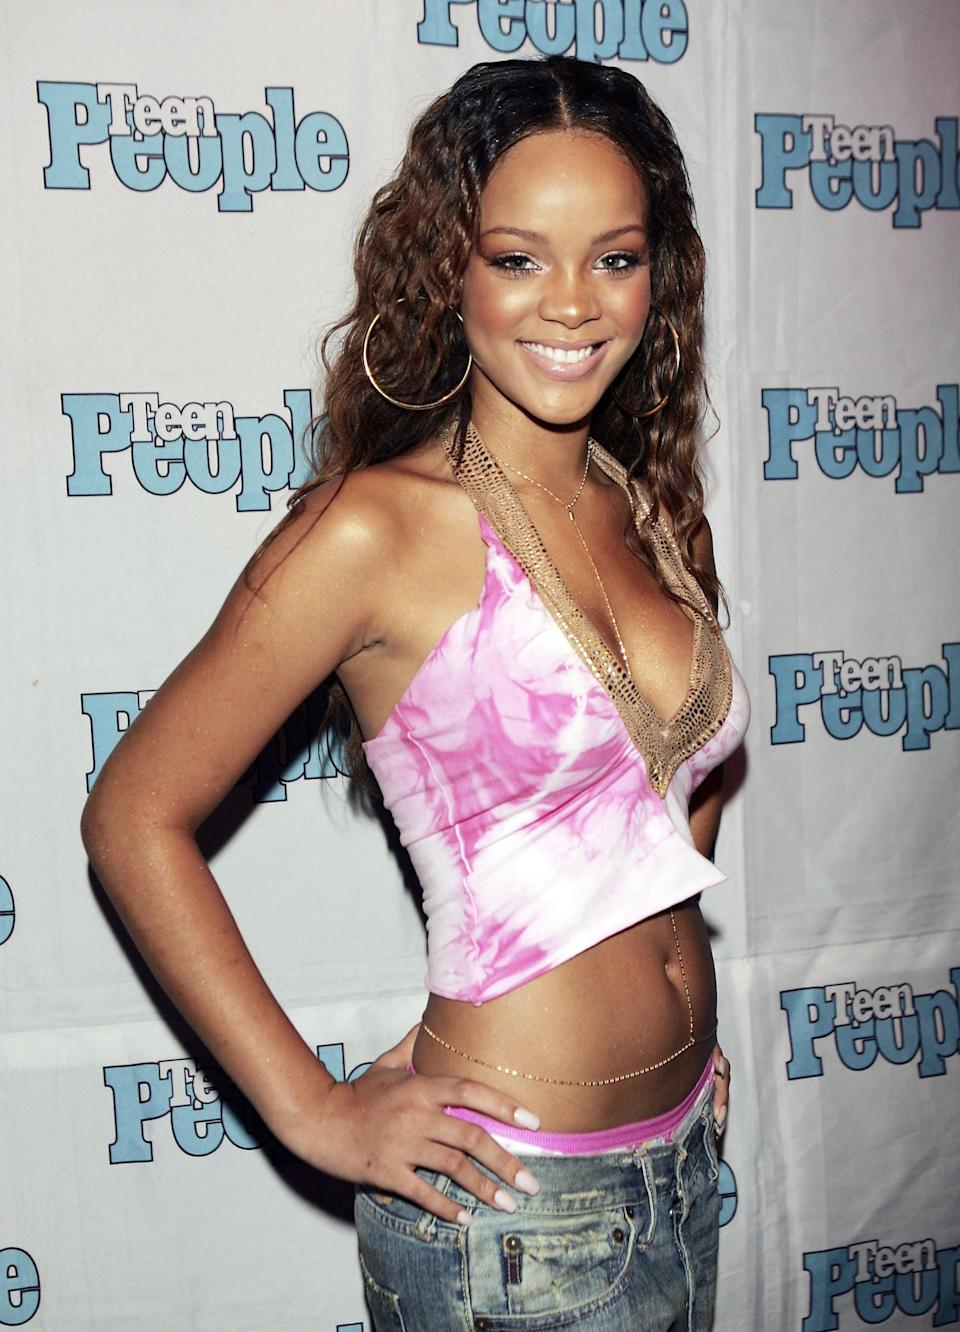 """<p>Since the '60s, tie-dye has come back in waves, each time in a new form. While the last time we wore it probably was in crop-top form, just like <a class=""""link rapid-noclick-resp"""" href=""""https://www.popsugar.com/Rihanna"""" rel=""""nofollow noopener"""" target=""""_blank"""" data-ylk=""""slk:Rihanna"""">Rihanna</a> did in 2005, <a href=""""https://www.popsugar.com/fashion/Best-Tie-Dye-Clothes-Women-46251076"""" class=""""link rapid-noclick-resp"""" rel=""""nofollow noopener"""" target=""""_blank"""" data-ylk=""""slk:the psychedelic print is back"""">the psychedelic print is back</a> and stronger than ever, having been splashed onto practically every single Spring runway. From hoodies to dresses, skirts, t-shirts, and denim, the only rule to wear tie-dye in 2019 is to have fun.</p>"""